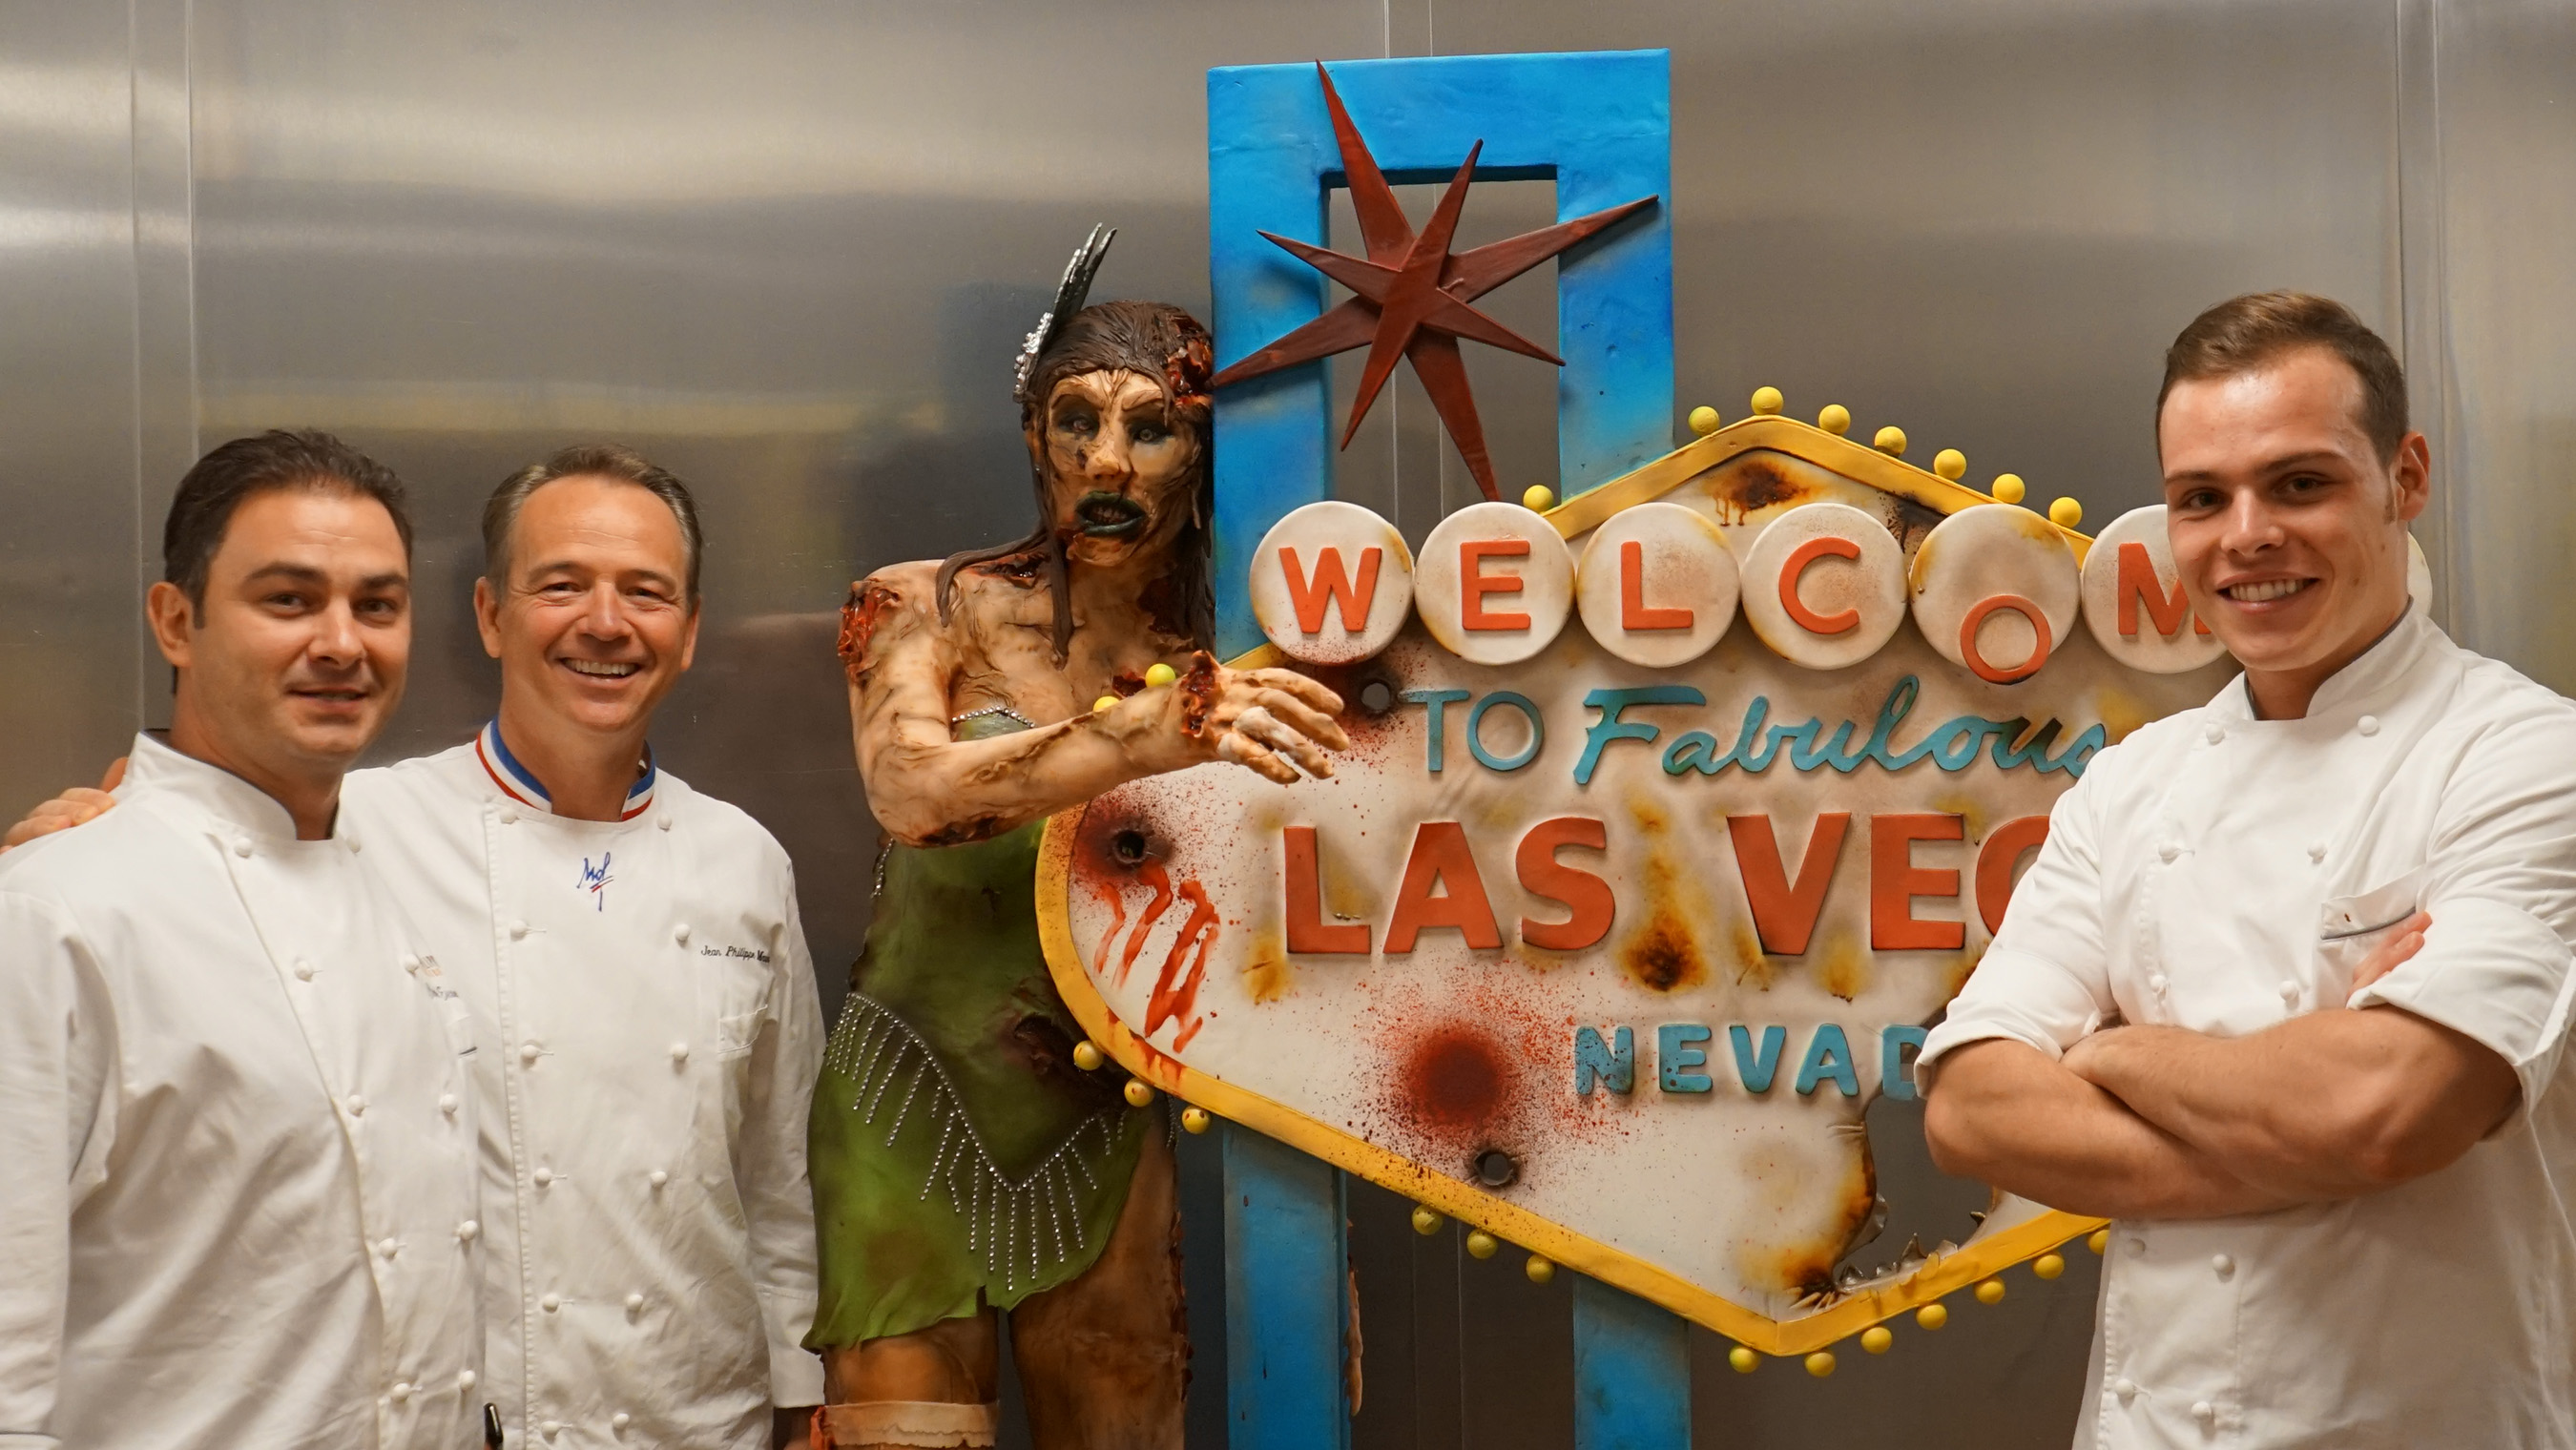 Chef Jean Philippe Maury, Executive Pastry Chef Claude Escamilla and Assistant Executive Pastry Chef Amaury Guichon pictured with Bellagio's main Halloween showpiece, the zombie showgirl